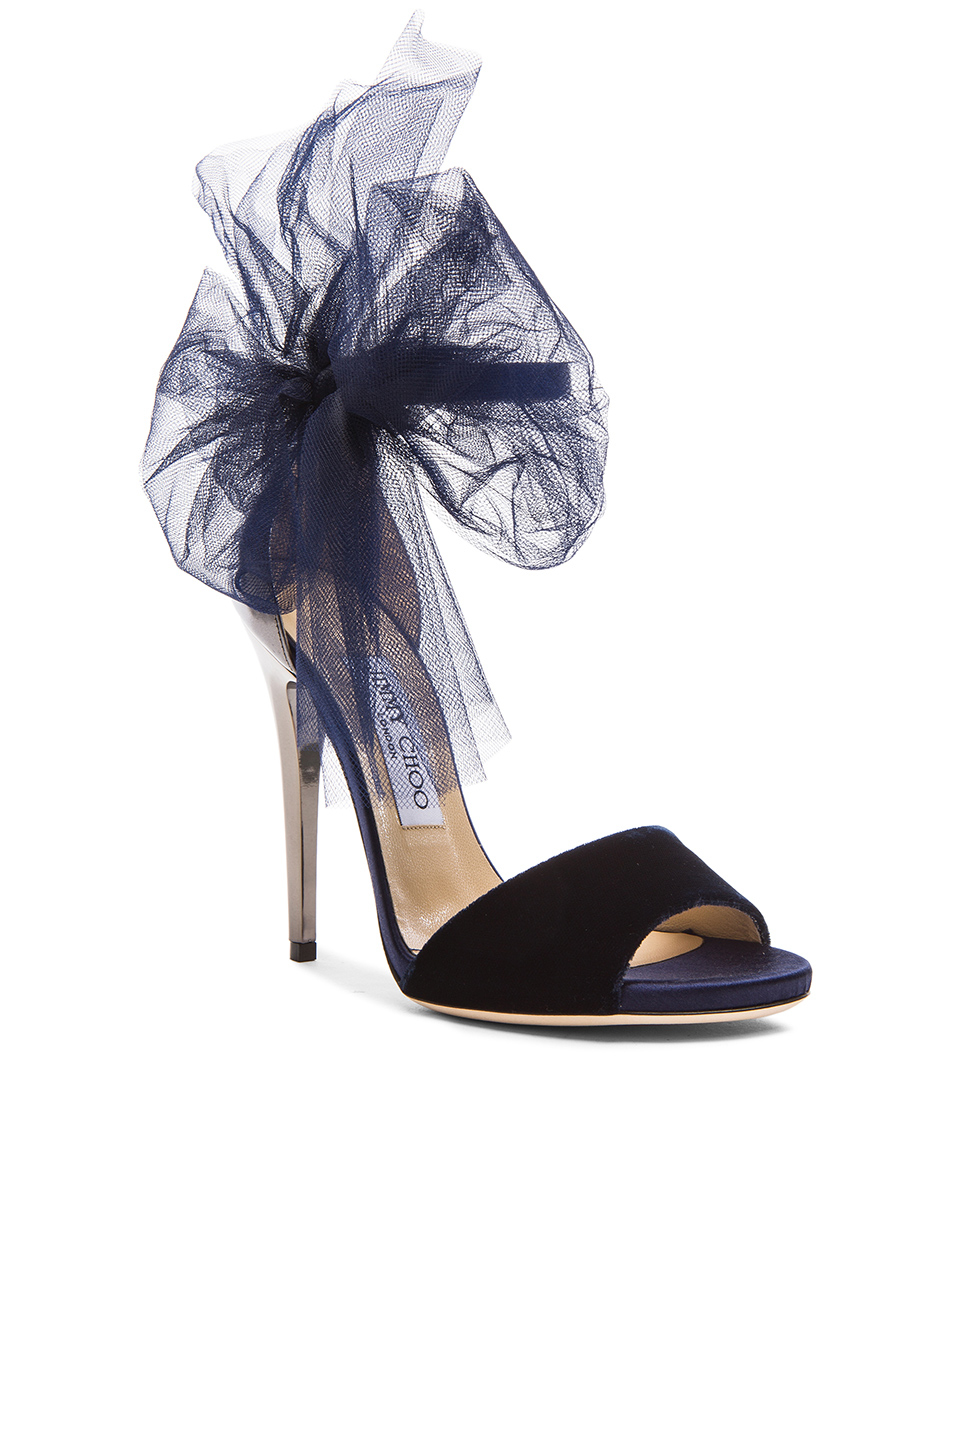 722bcb1a9a96 Lyst - Jimmy Choo Lilyth Velvet and Leather Bow Sandals in Blue